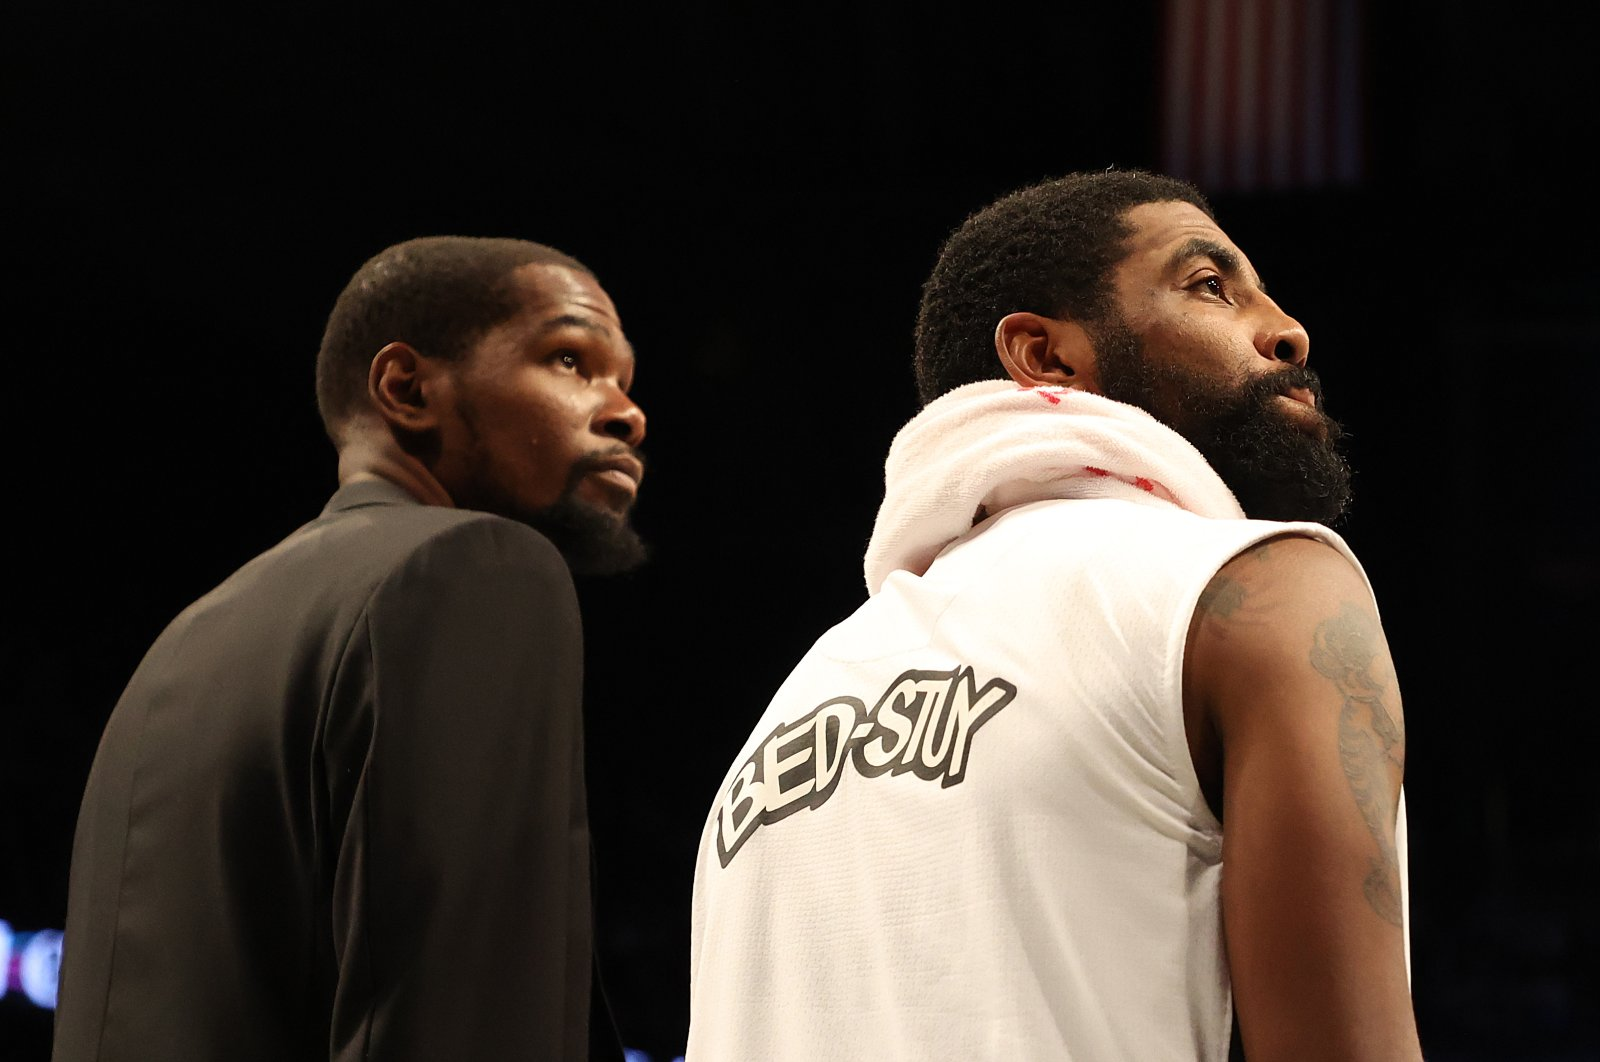 In this file photo taken on January 18, 2020 Kevin Durant #7 and Kyrie Irving #11 of the Brooklyn Nets look on during their game against the Milwaukee Bucks at Barclays Center in New York City. (AFP Photo)